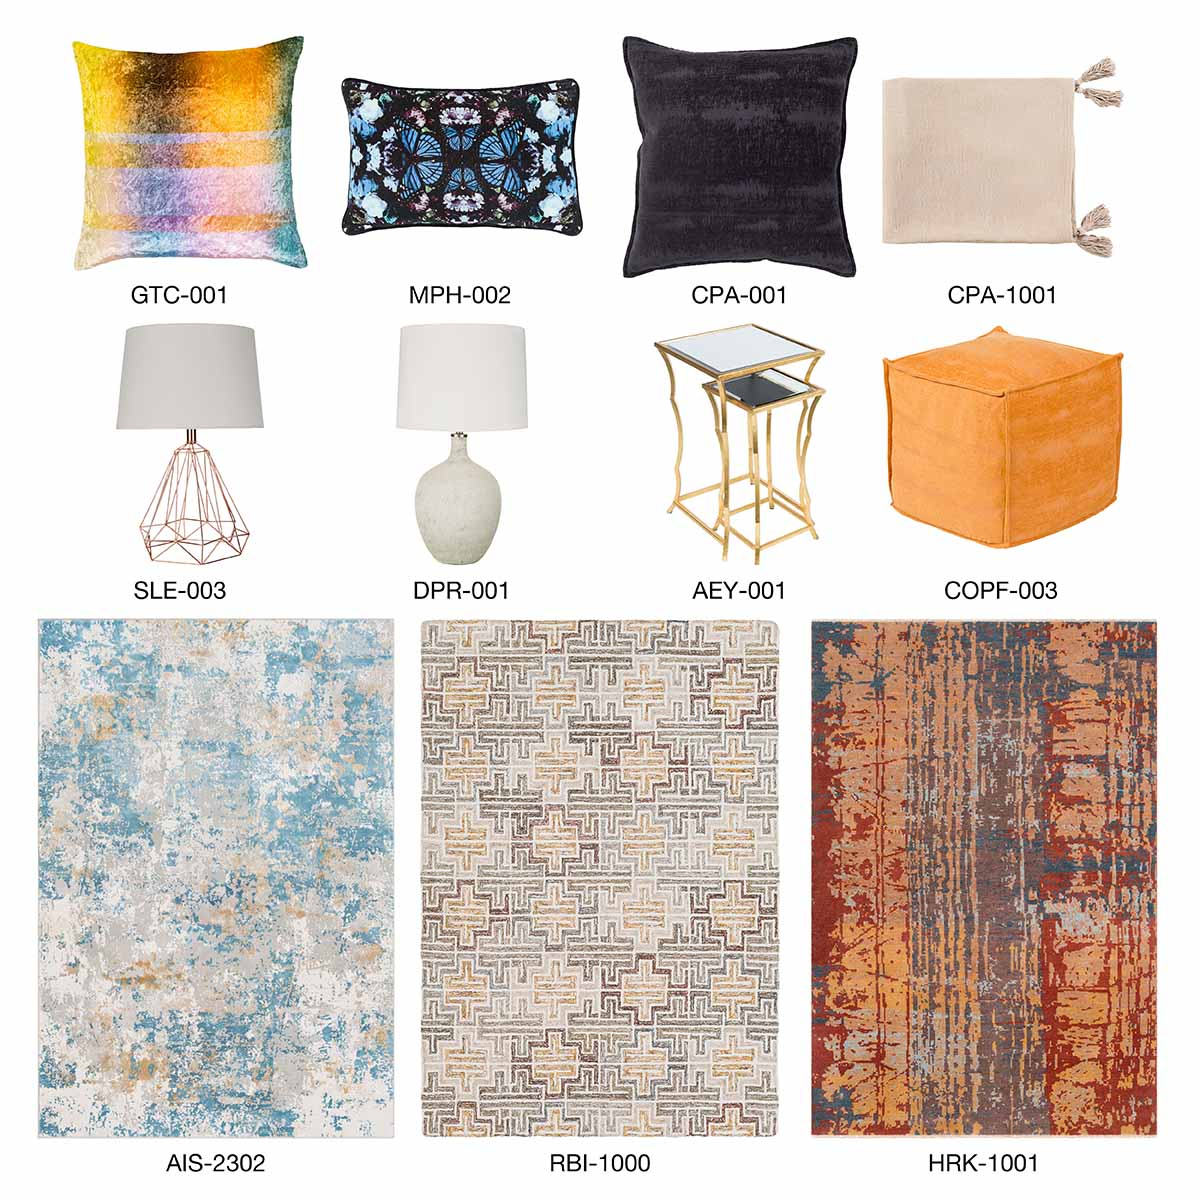 2018 – Surya | Rugs, Lighting, Pillows, Wall Decor, Accent Inside Most Up To Date Blended Fabric Teresina Wool And Viscose Wall Hangings With Hanging Accessories Included (View 16 of 20)